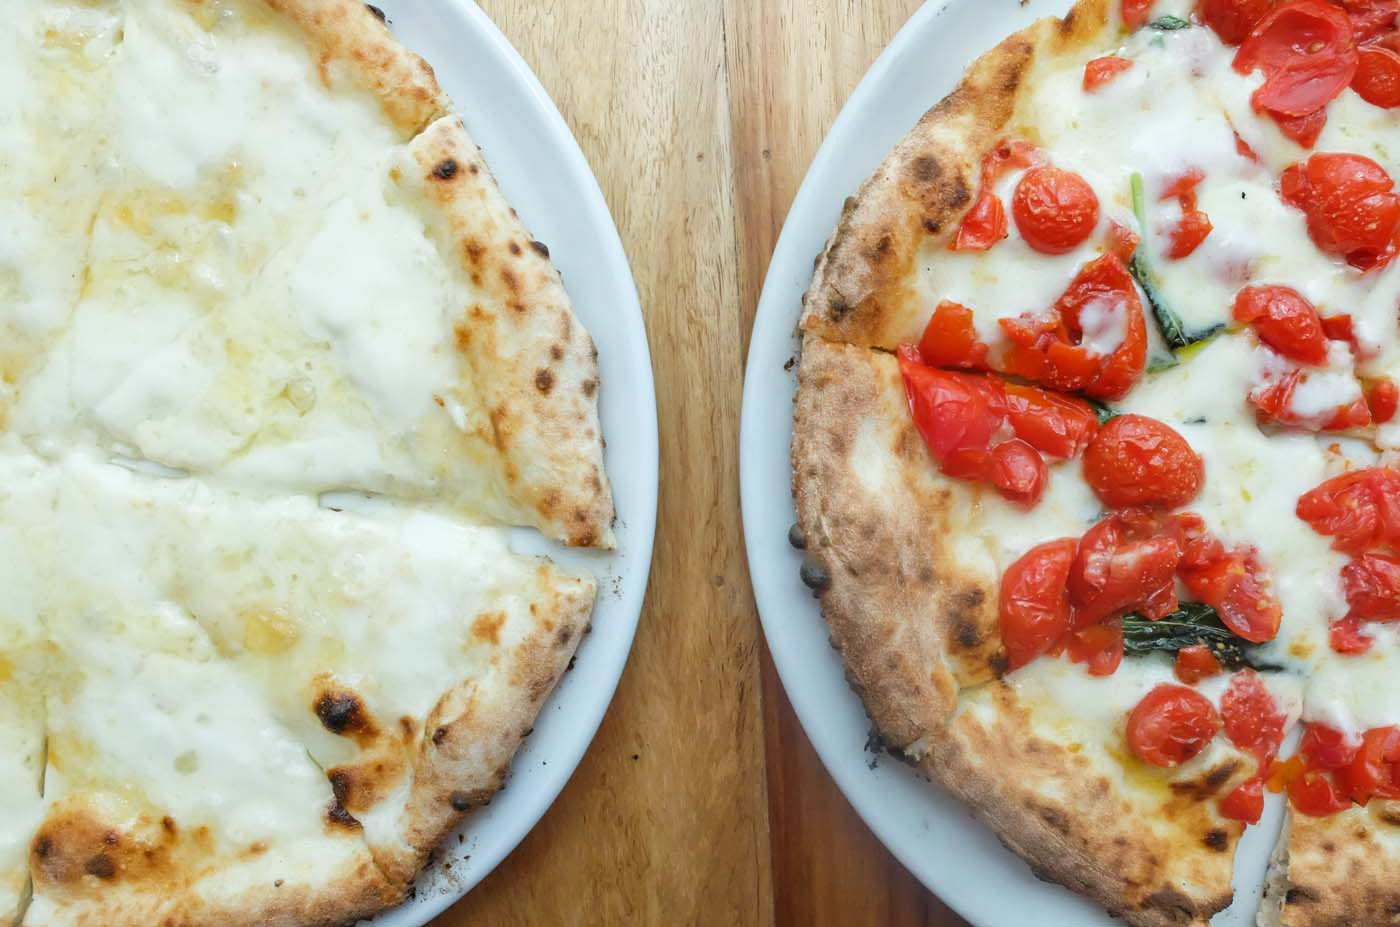 SIDE BY SIDE. The DOC vs the classic four-cheese pizza. Both are a feast for the palate, with an option to enjoy the latter with a drizzle of honey on top